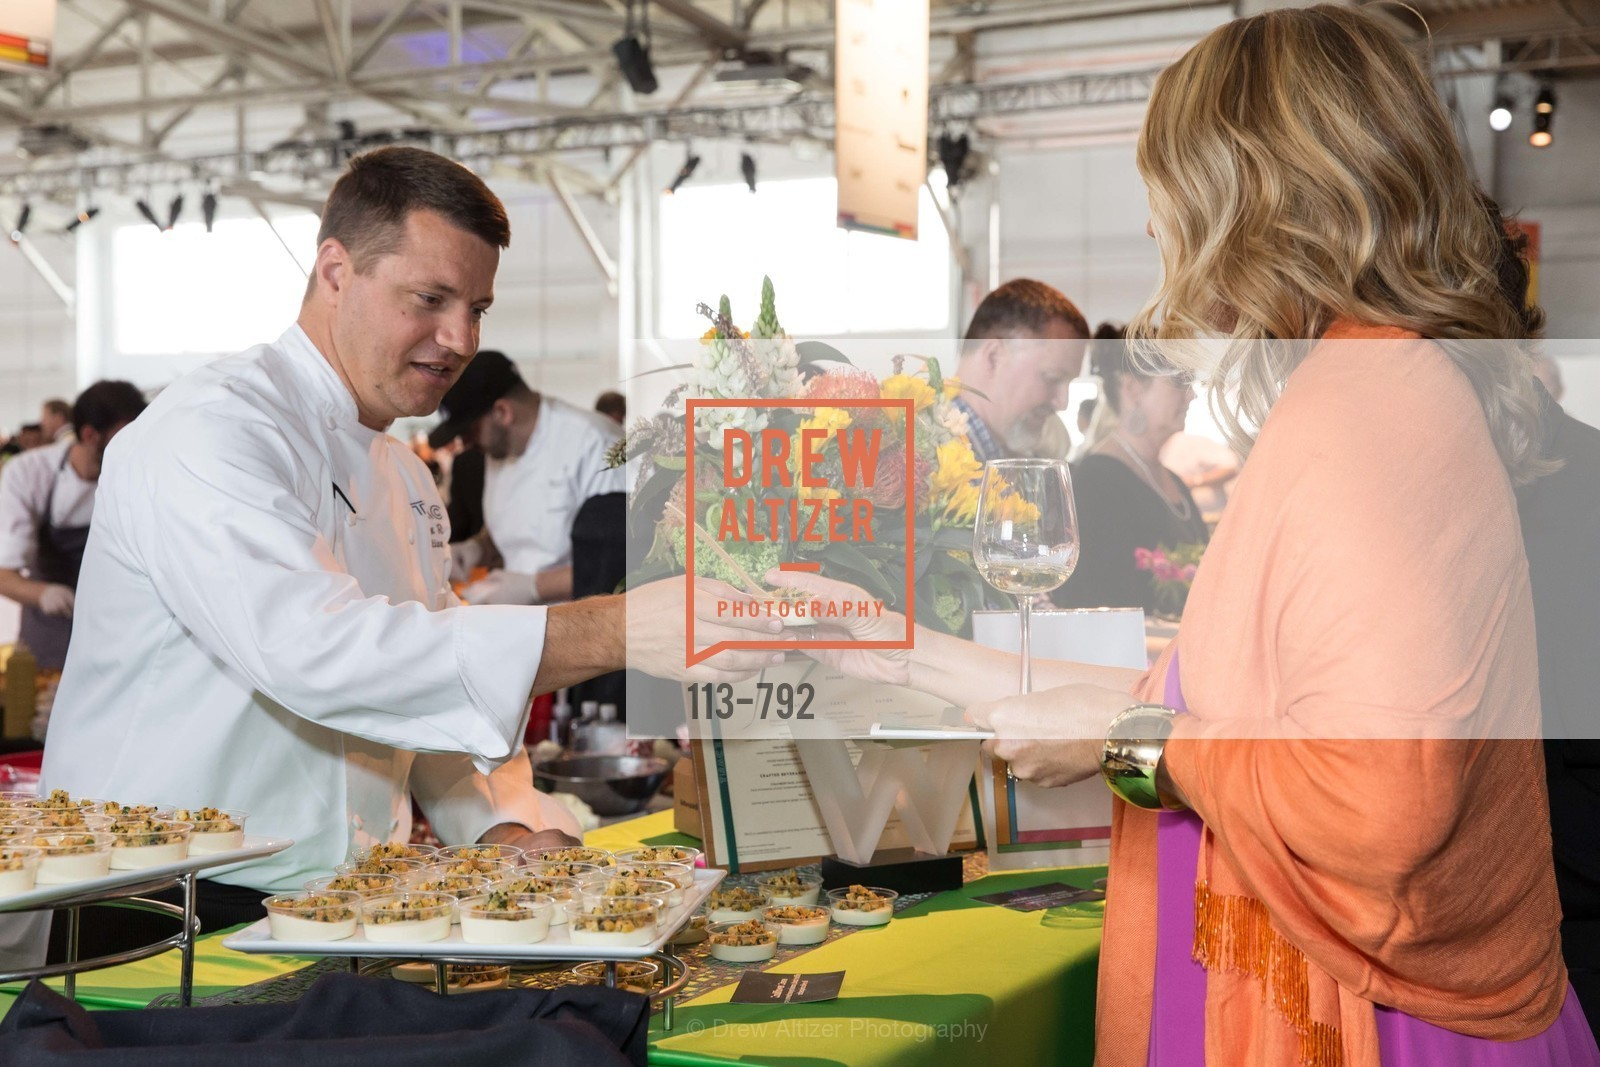 Jason Rea, MEALS ON WHEELS OF SAN FRANCISCO'S 28th Annual Star Chefs and Vintners Gala, US, April 20th, 2015,Drew Altizer, Drew Altizer Photography, full-service event agency, private events, San Francisco photographer, photographer California